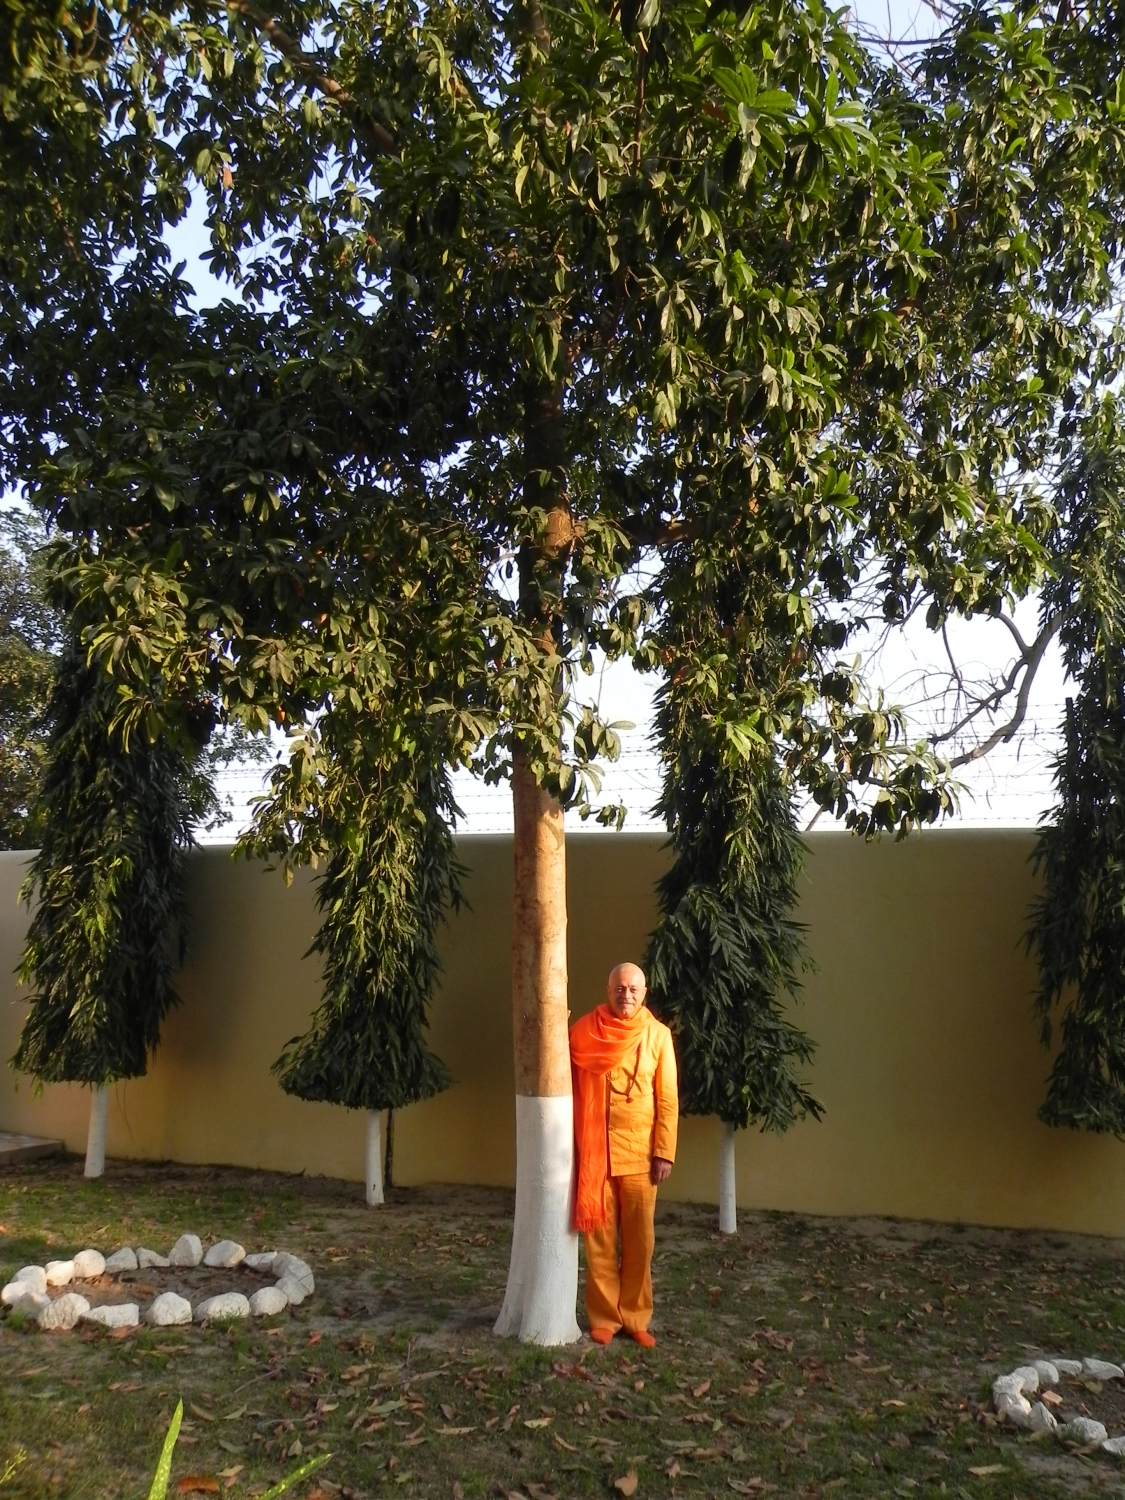 Meeting of H.H. Jagat Guru Amrta Sūryānanda Mahā Rāja with Svámin Súryaprakash and Svámin Niranjanánanda - Bihar School of Yoga, Munger, India – 2011